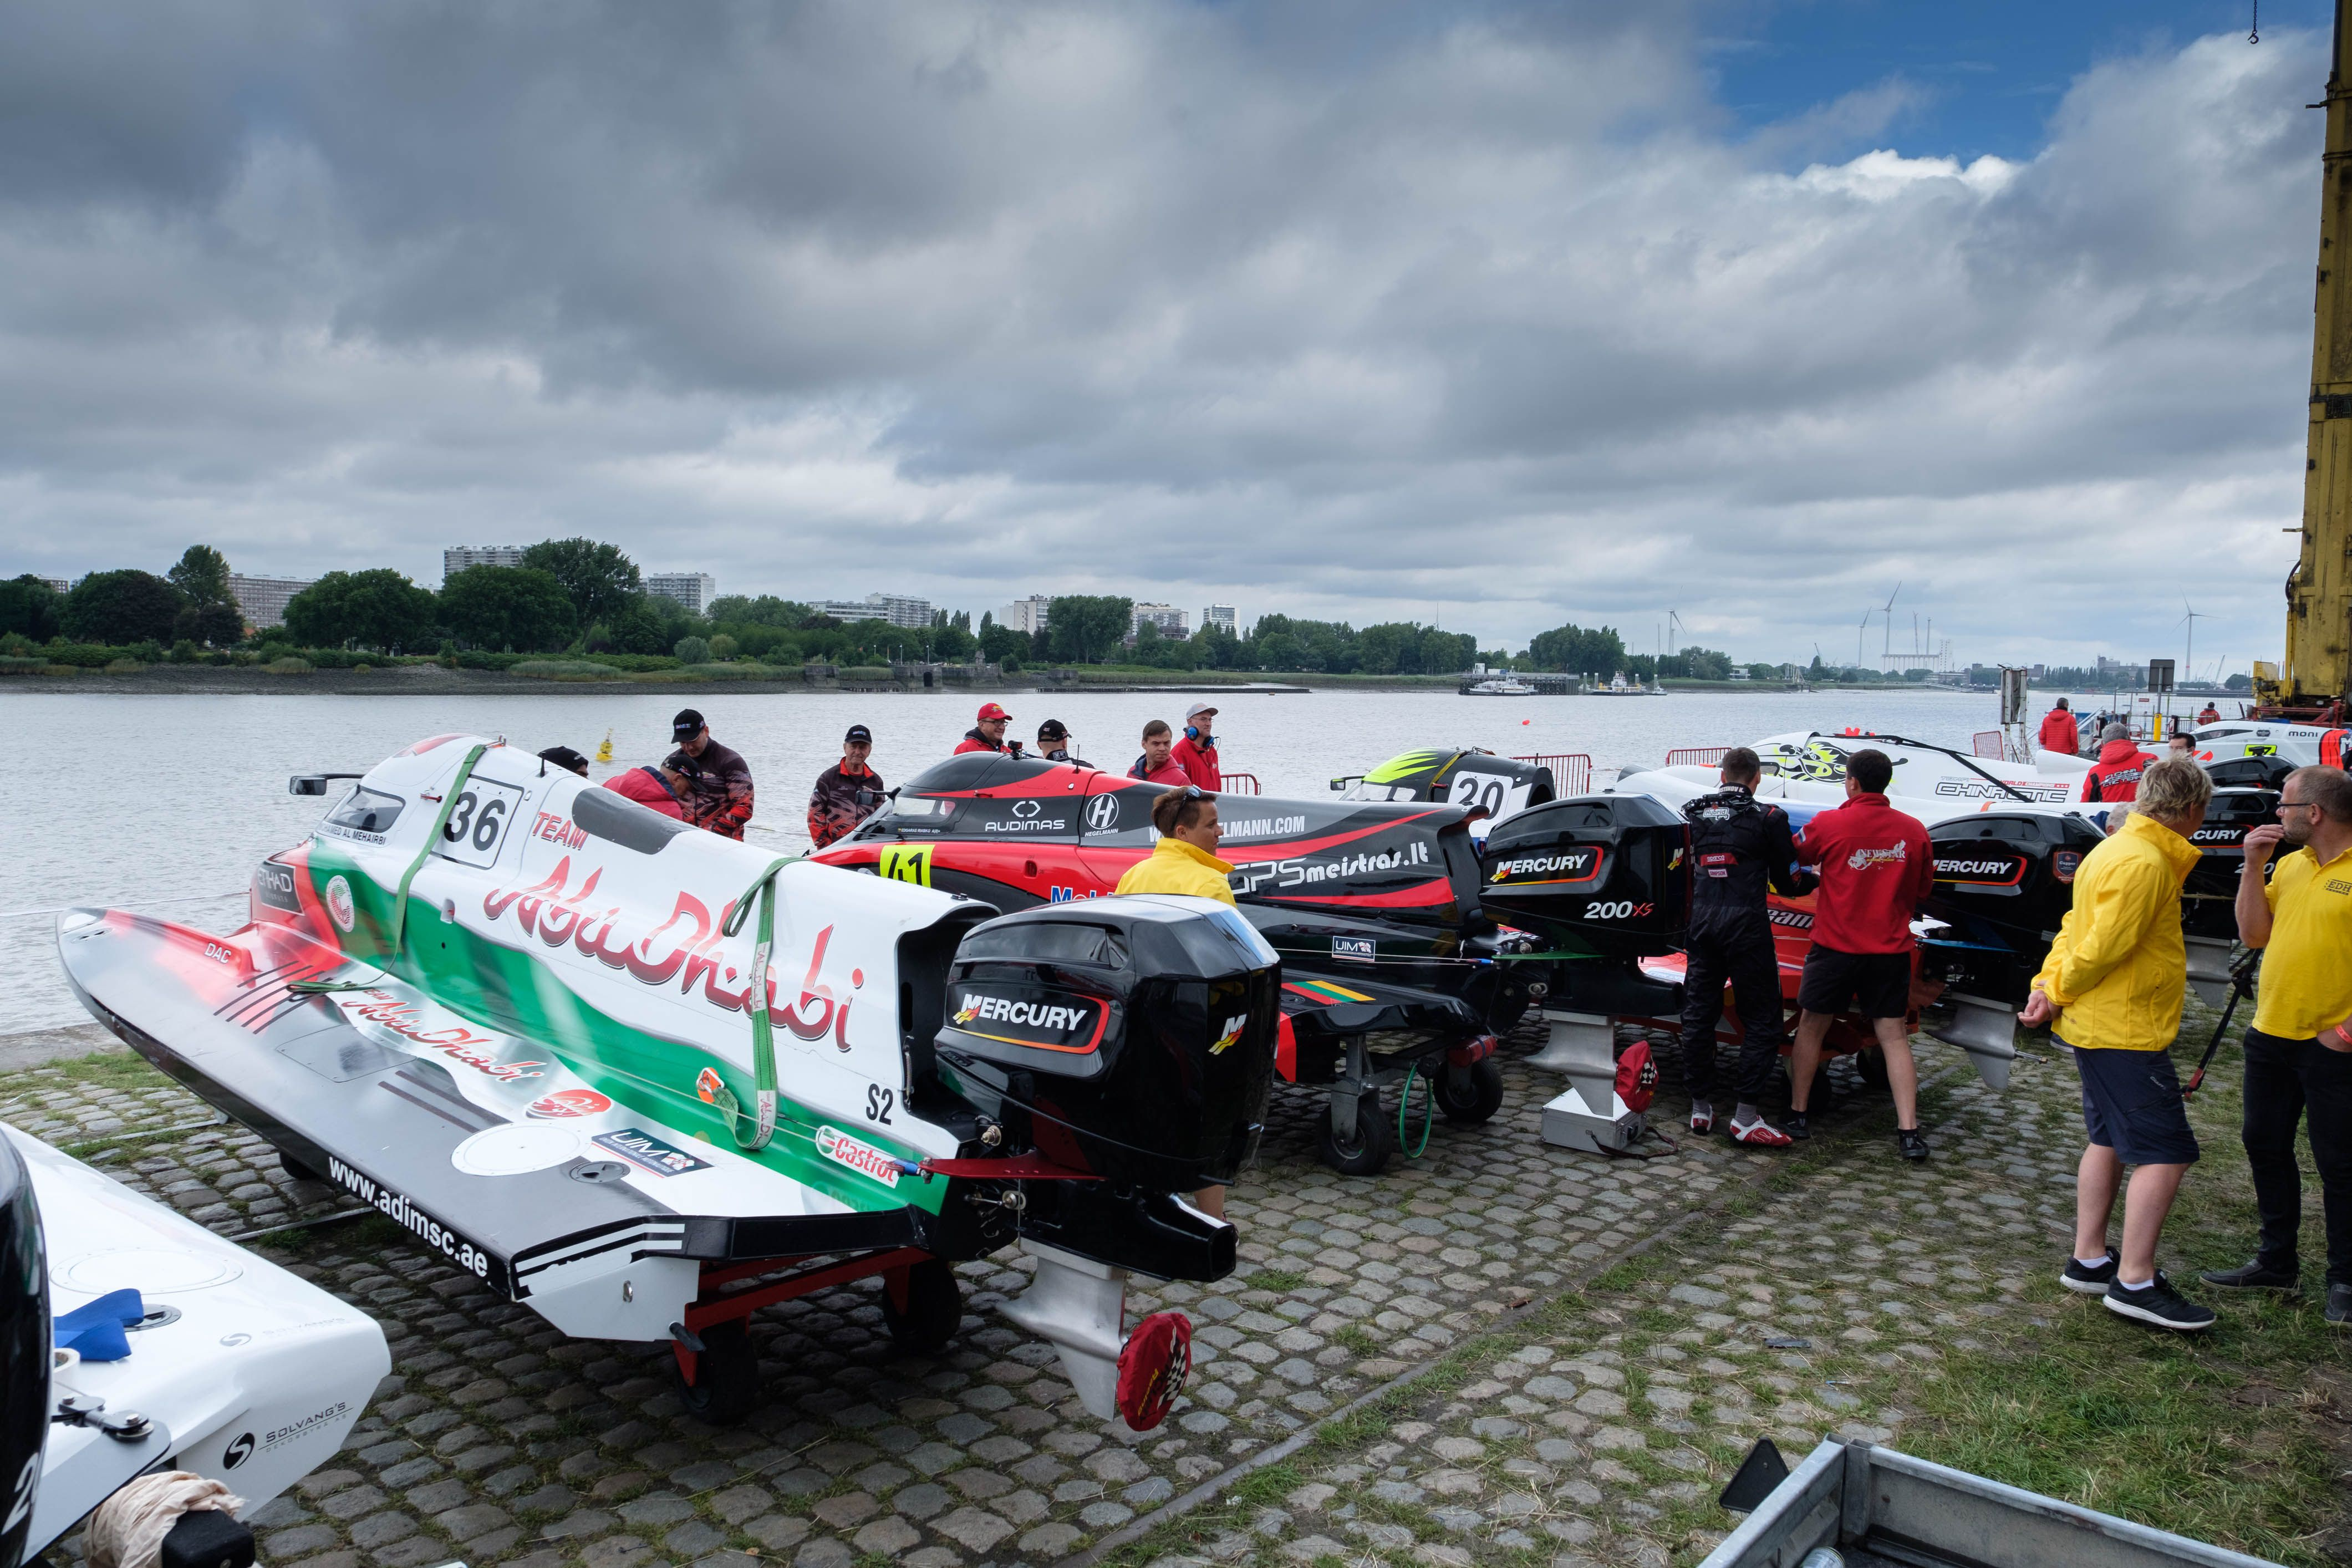 F2 POWERBOAT BELGIAN GRAND PRIX